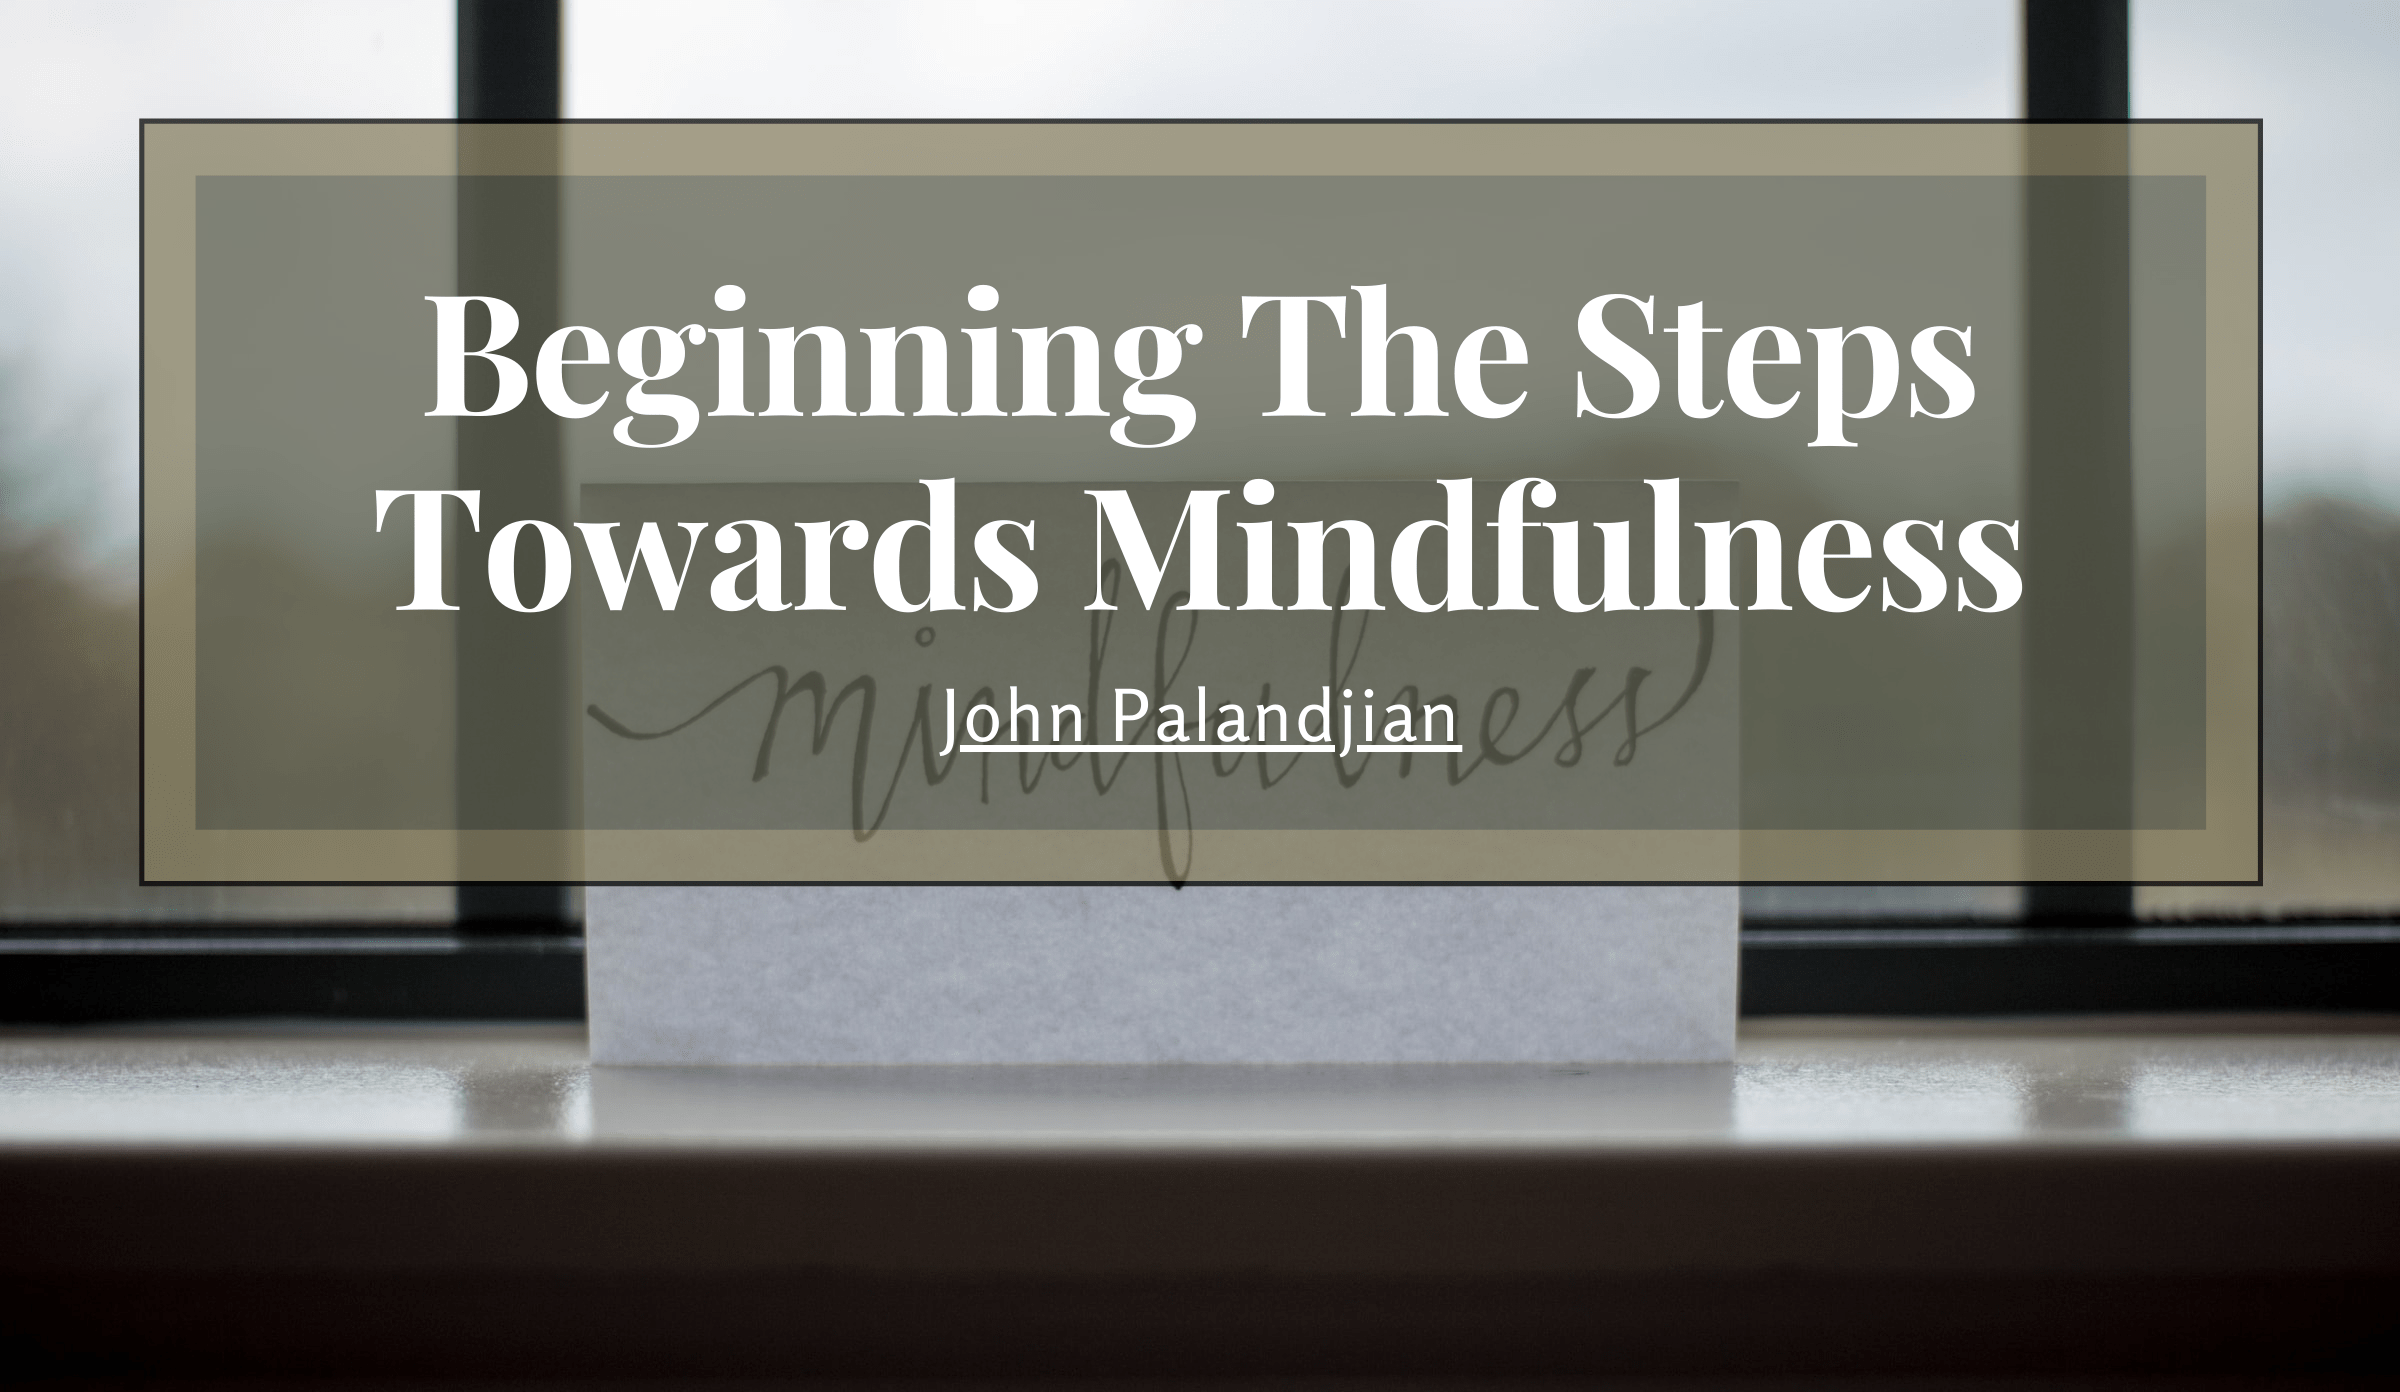 beginning-the-steps-towards-mindfulness